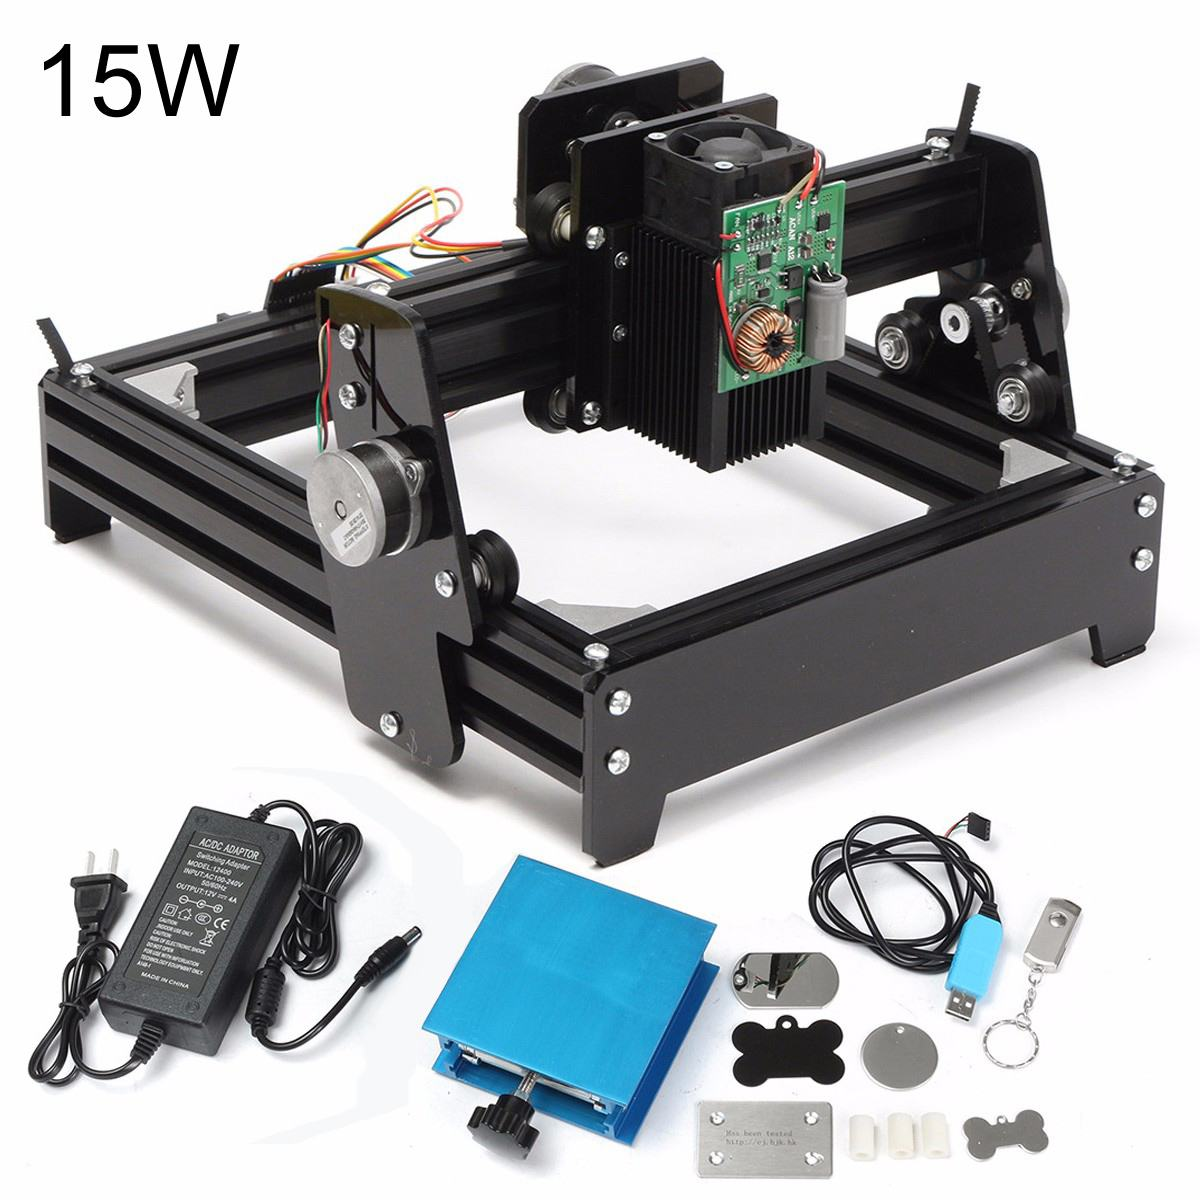 15W Laser AS-5 USB Desktop 15000mW CNC Laser Engraver DIY Marking Machine Router For Metal Stone Wood Engraving Area 14 x 20cm15W Laser AS-5 USB Desktop 15000mW CNC Laser Engraver DIY Marking Machine Router For Metal Stone Wood Engraving Area 14 x 20cm